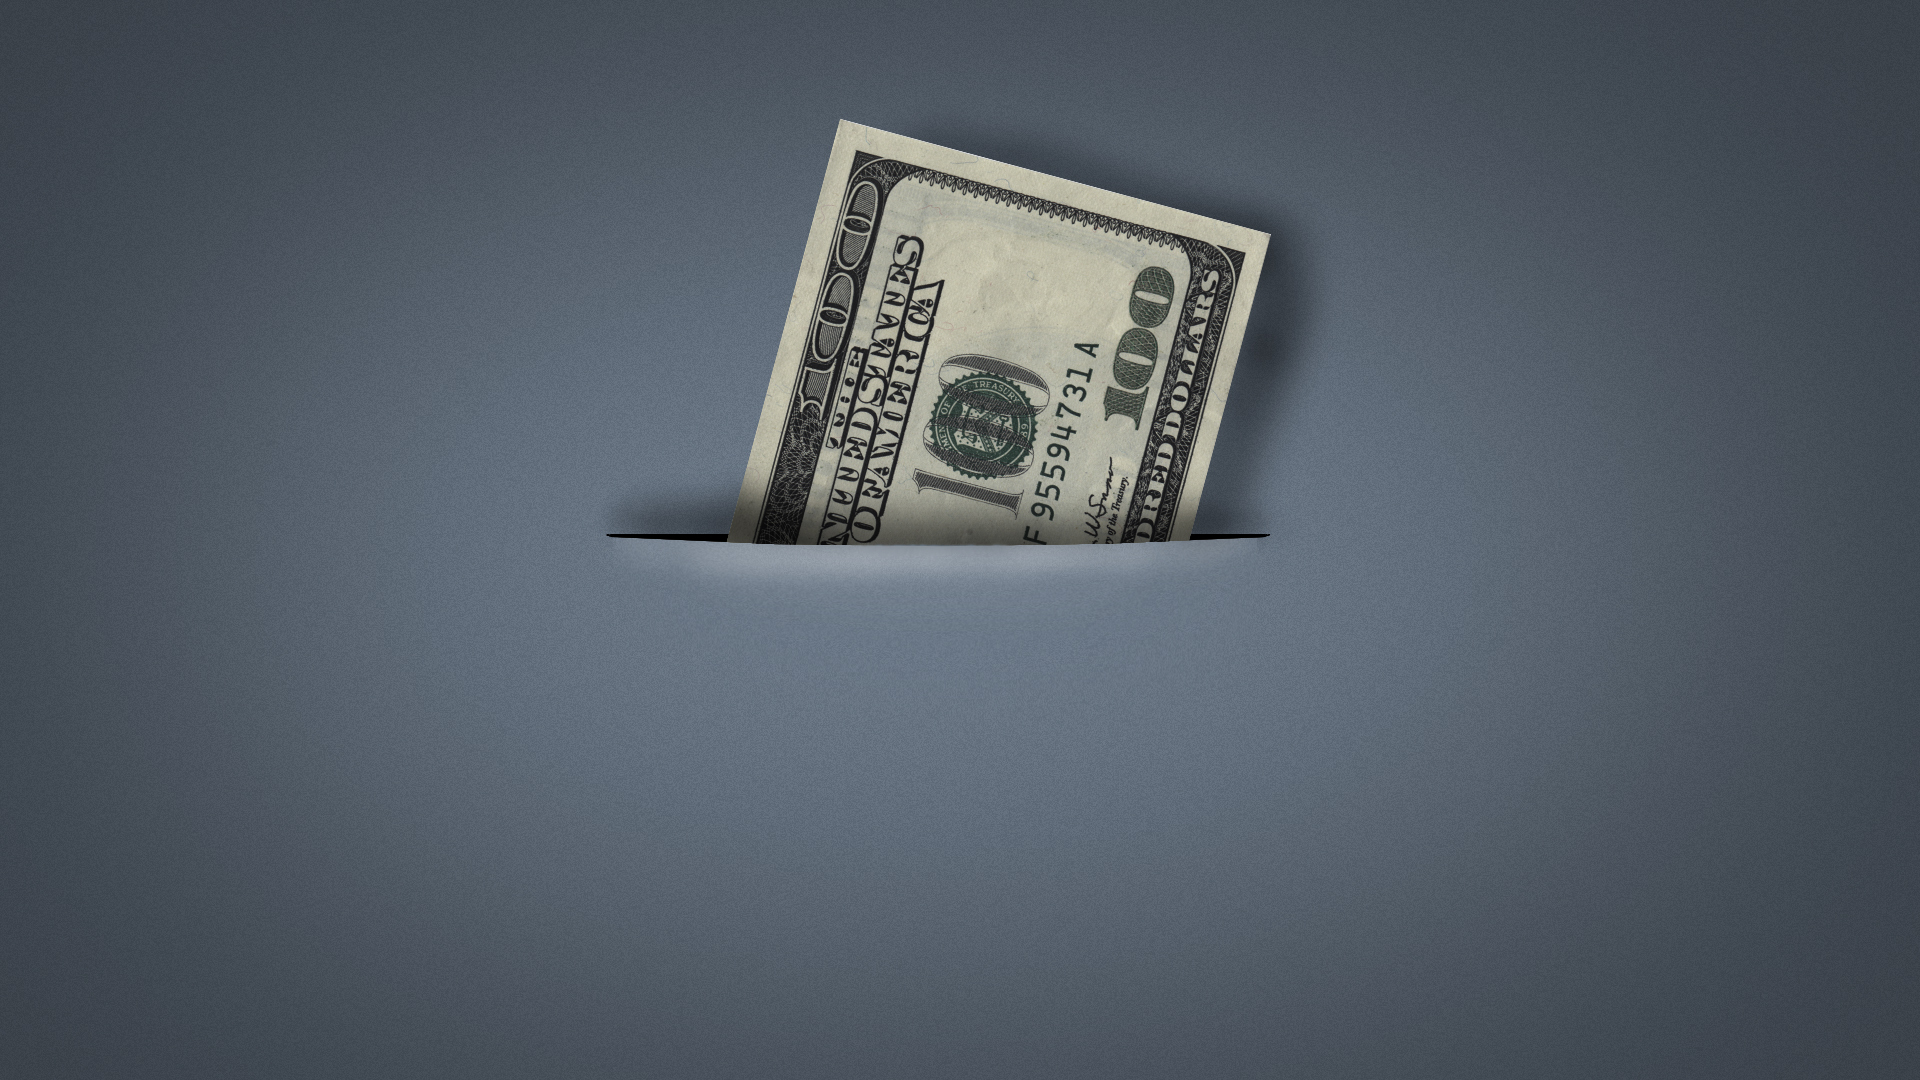 Dollar Full HD Wallpaper and Background Image | 1920x1080 ...